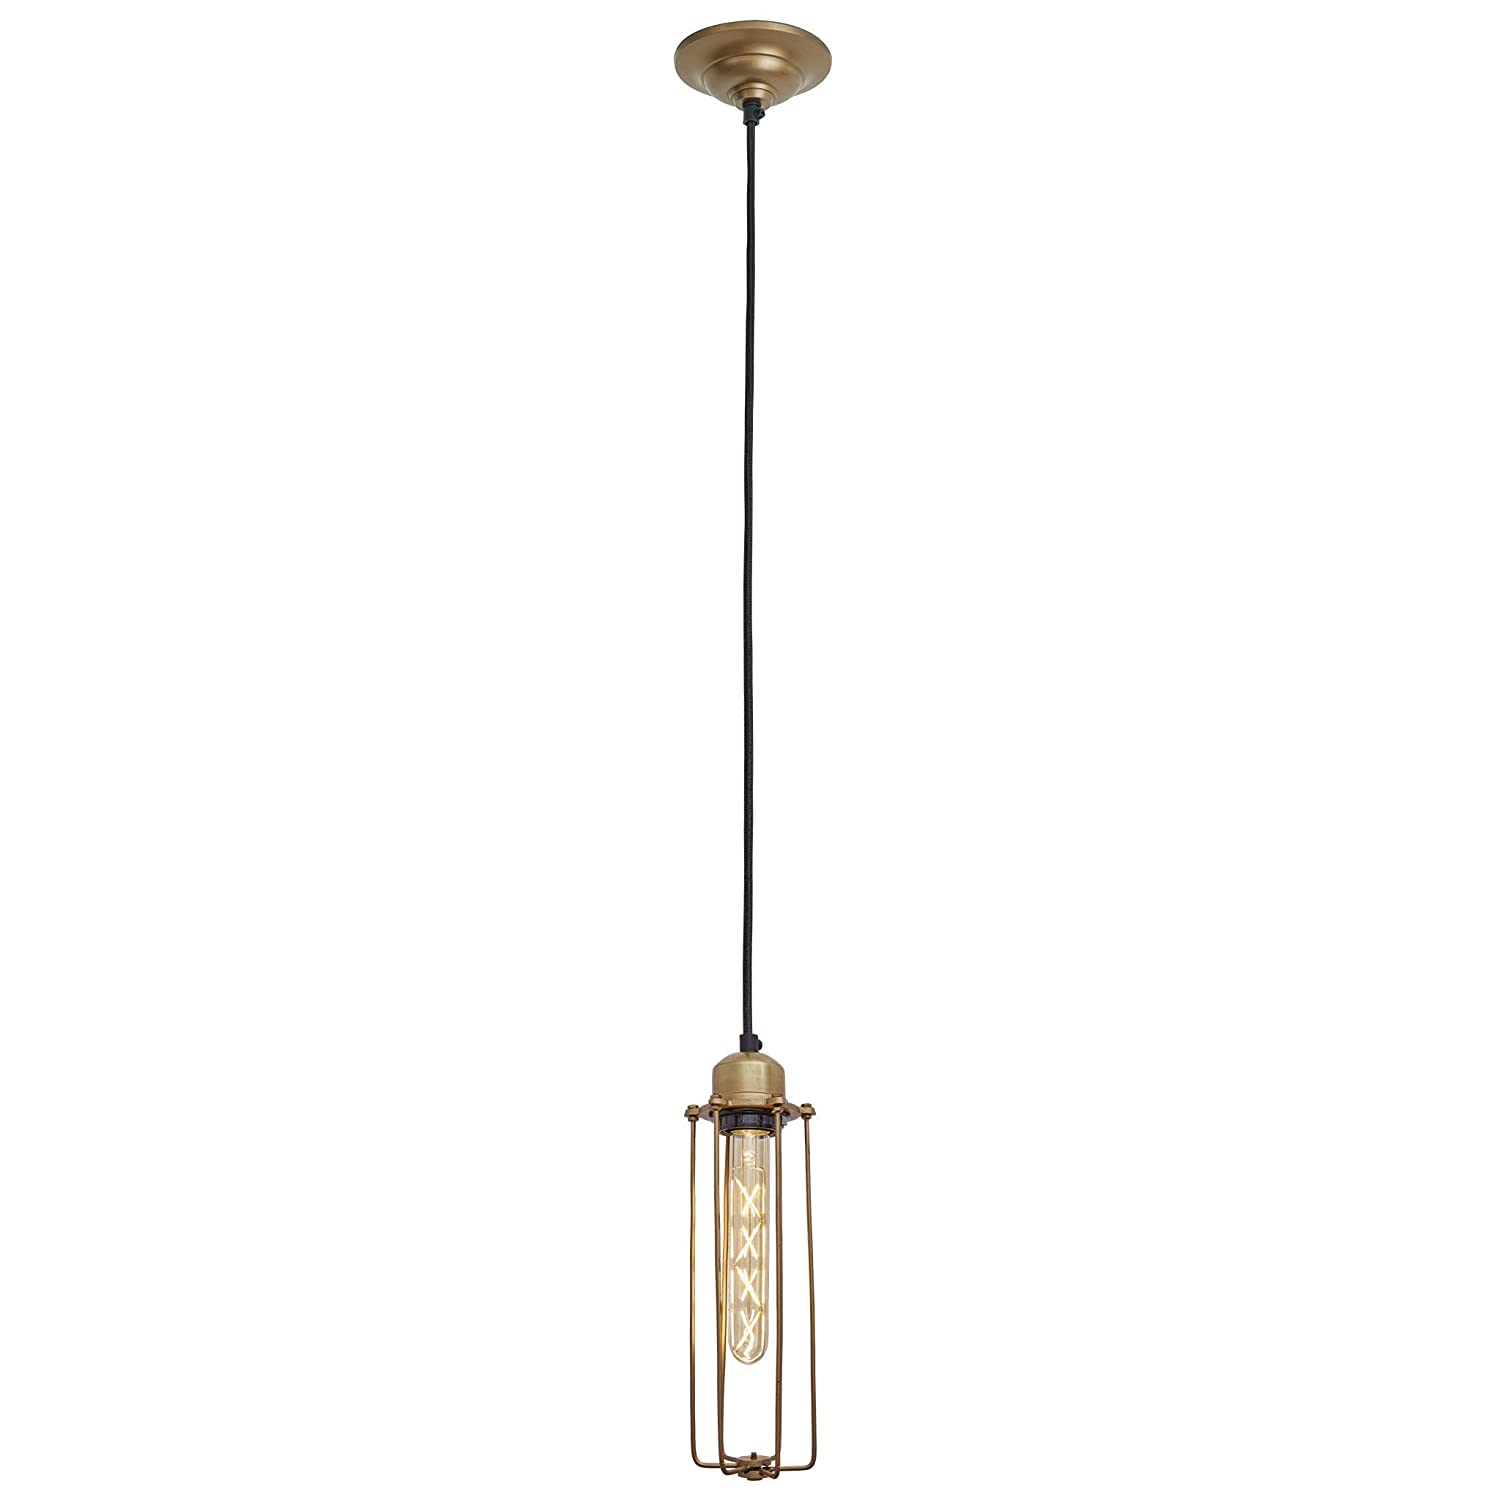 Orlando Cylinder Wire Cage Retro Pendant Light Antique Brass Vintage Sconce Wall Lighting